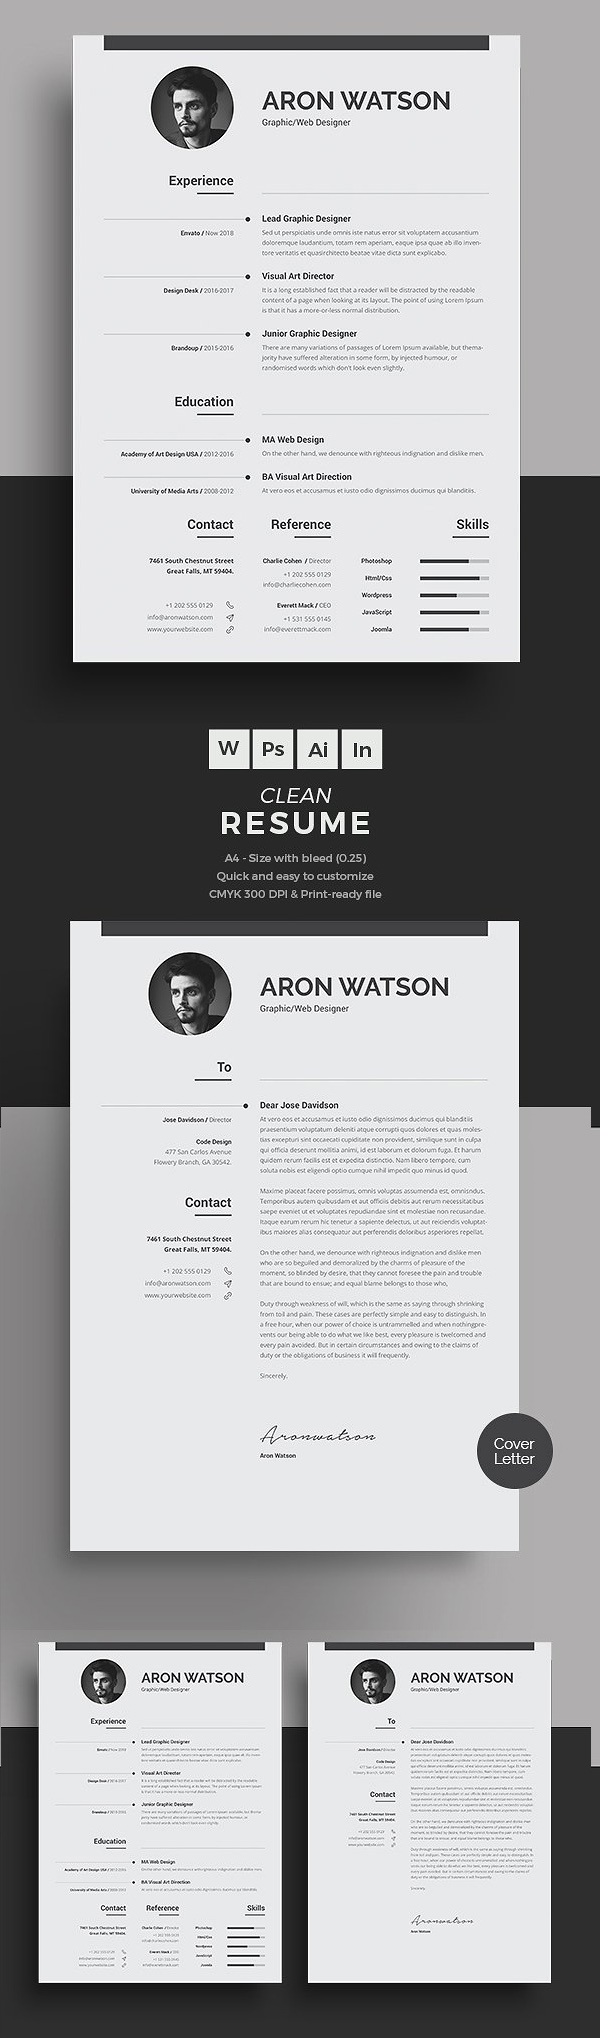 Summary For Resume Excel  Best Minimal Resume Templates  Design  Graphic Design Junction Resume For School with Waitress Resume Description Excel  Best Minimal Resume Templates   List Of Skills For A Resume Excel